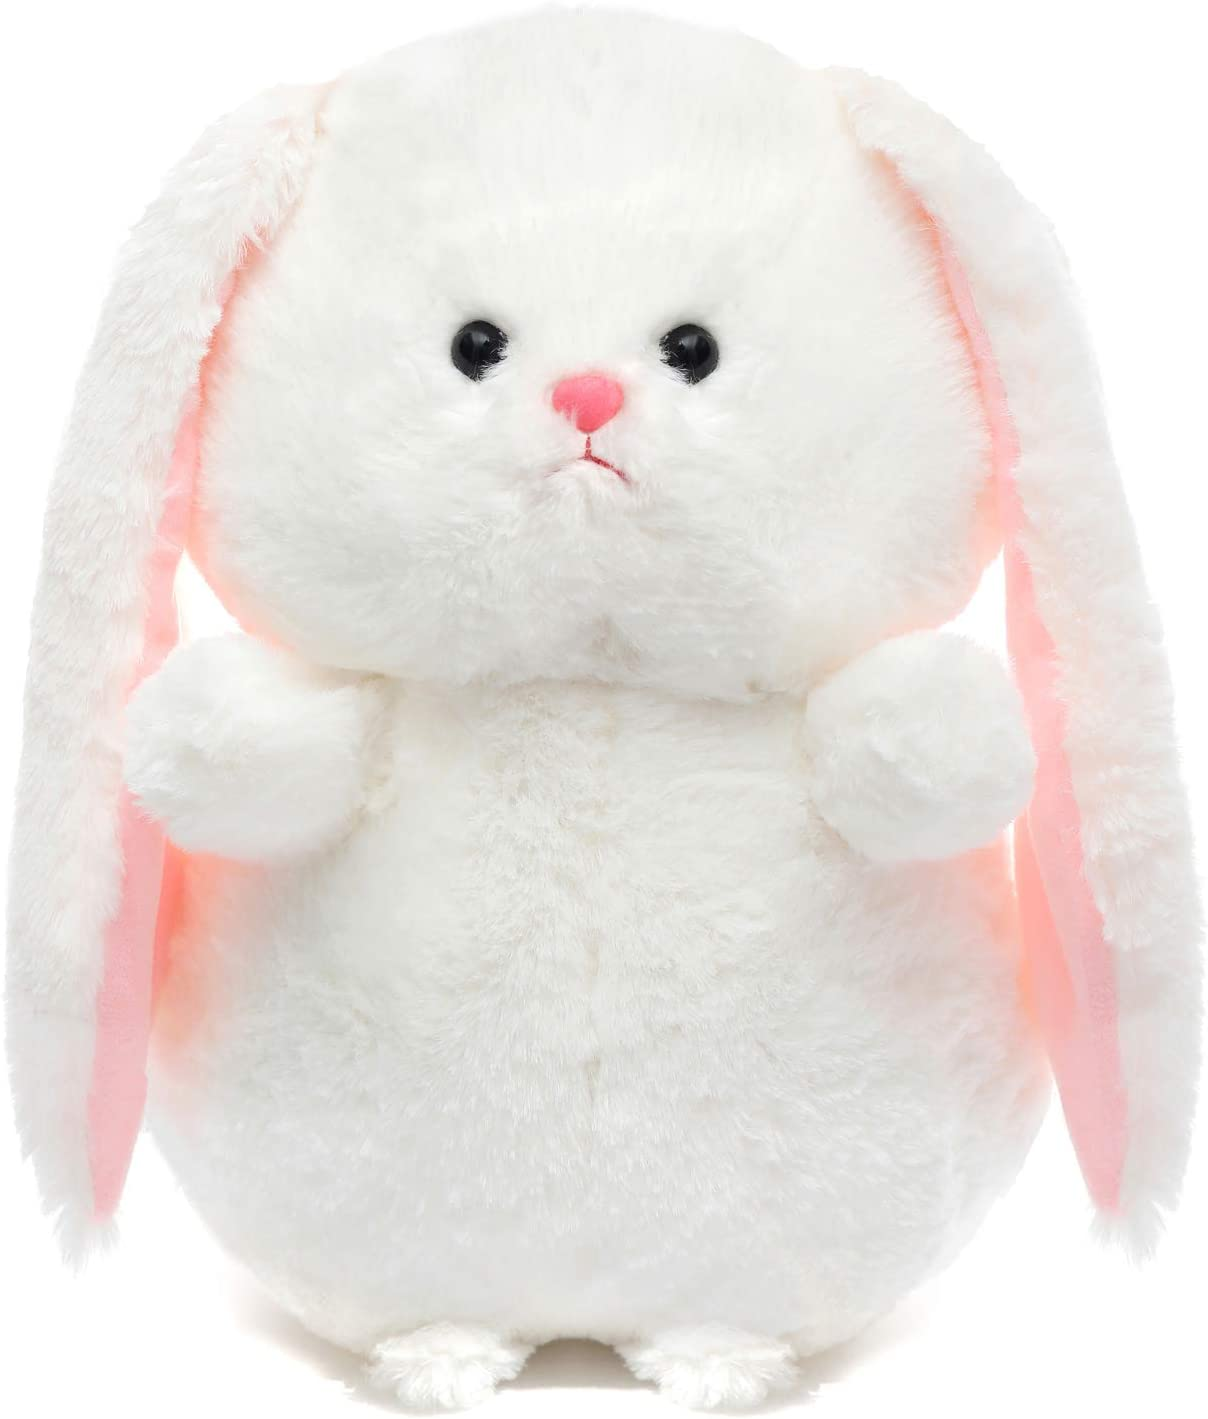 Cute Sweet Stuffed Rabbit Animal Doll Plush Fluffy Soft Bunny TOY Kids Gifts G